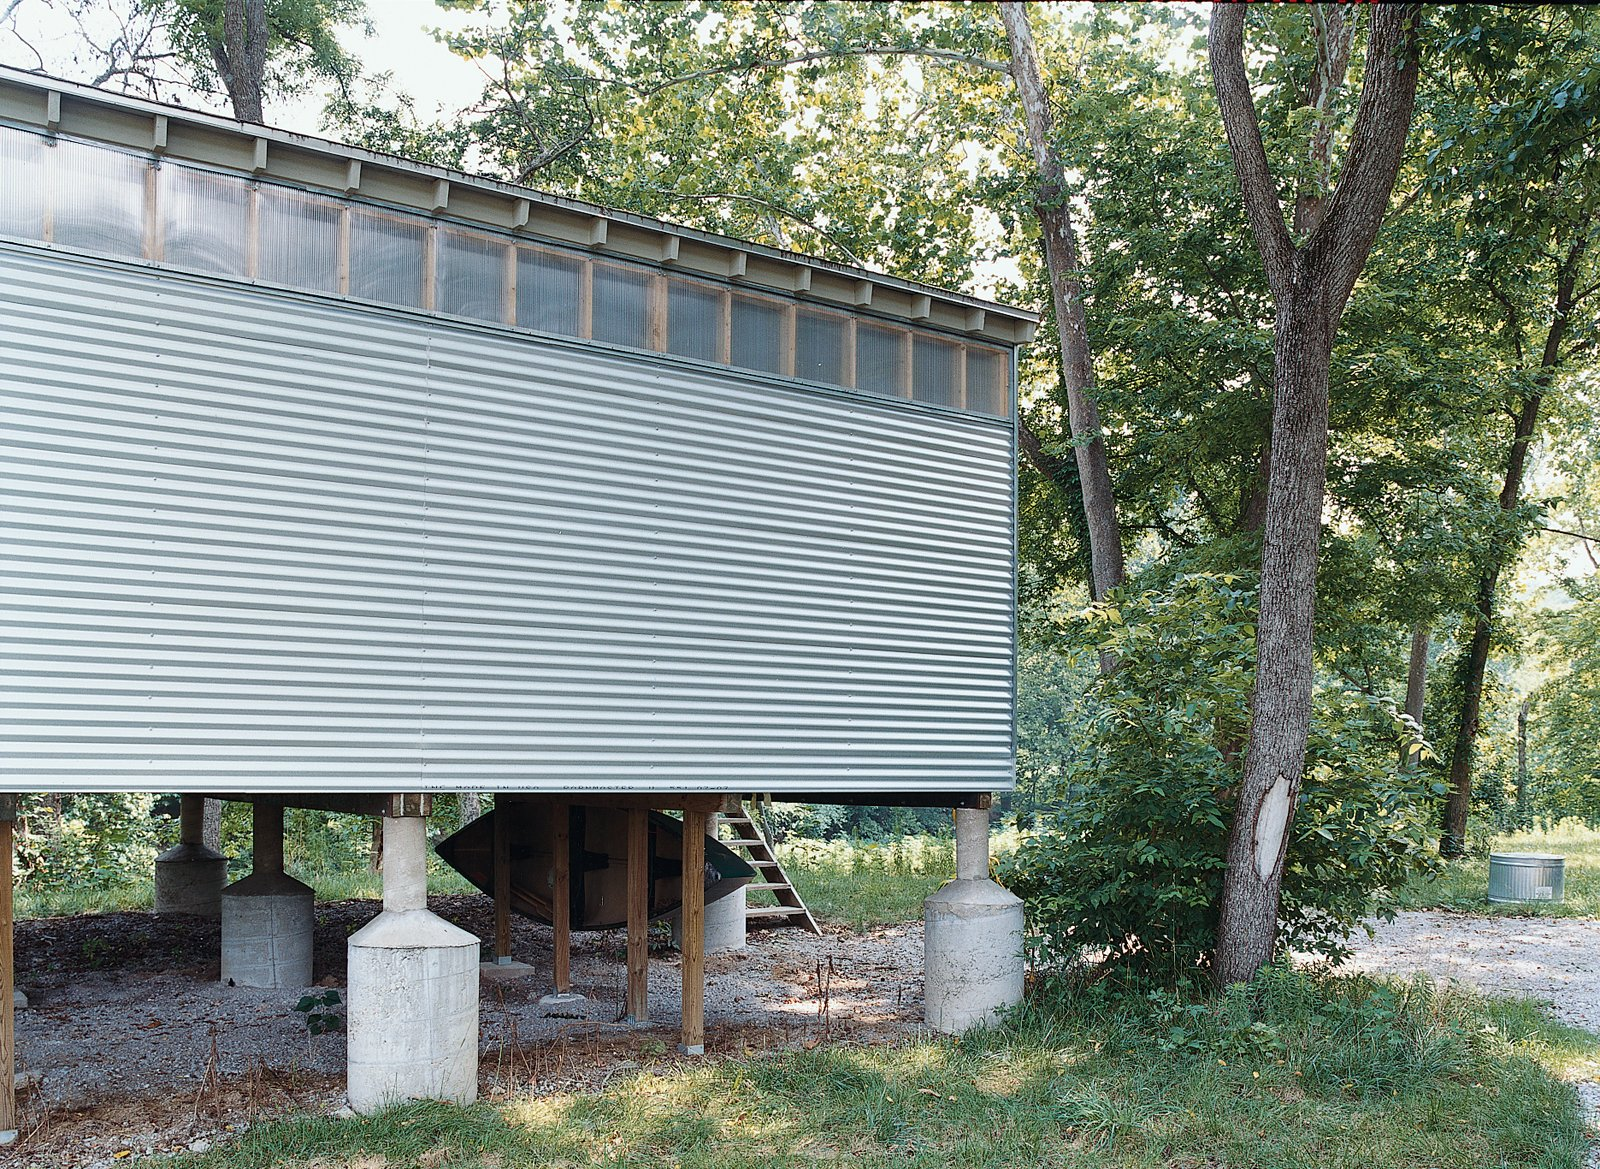 The creekside Fish Camp prototype rests on oversize flood-rated pylons, one of many foundation options the Camp units can accommodate. Tagged: Exterior, Metal Siding Material, House, and Cabin Building Type.  Photo 10 of 10 in All You Need Is LV